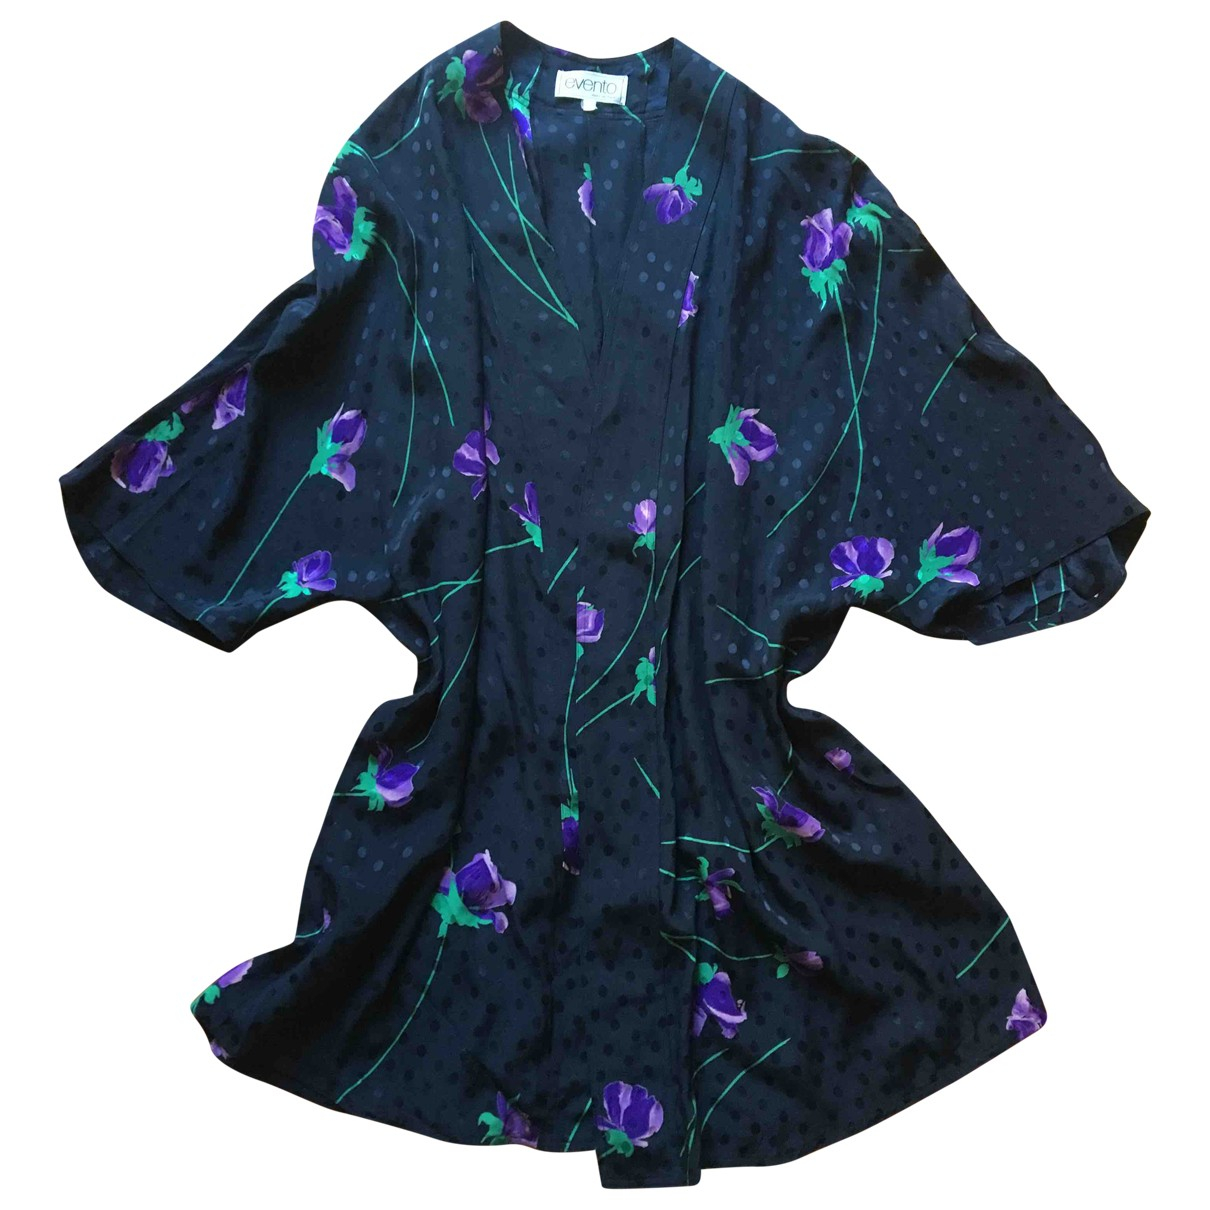 Non Signé / Unsigned Oversize Black Silk jacket for Women One Size International